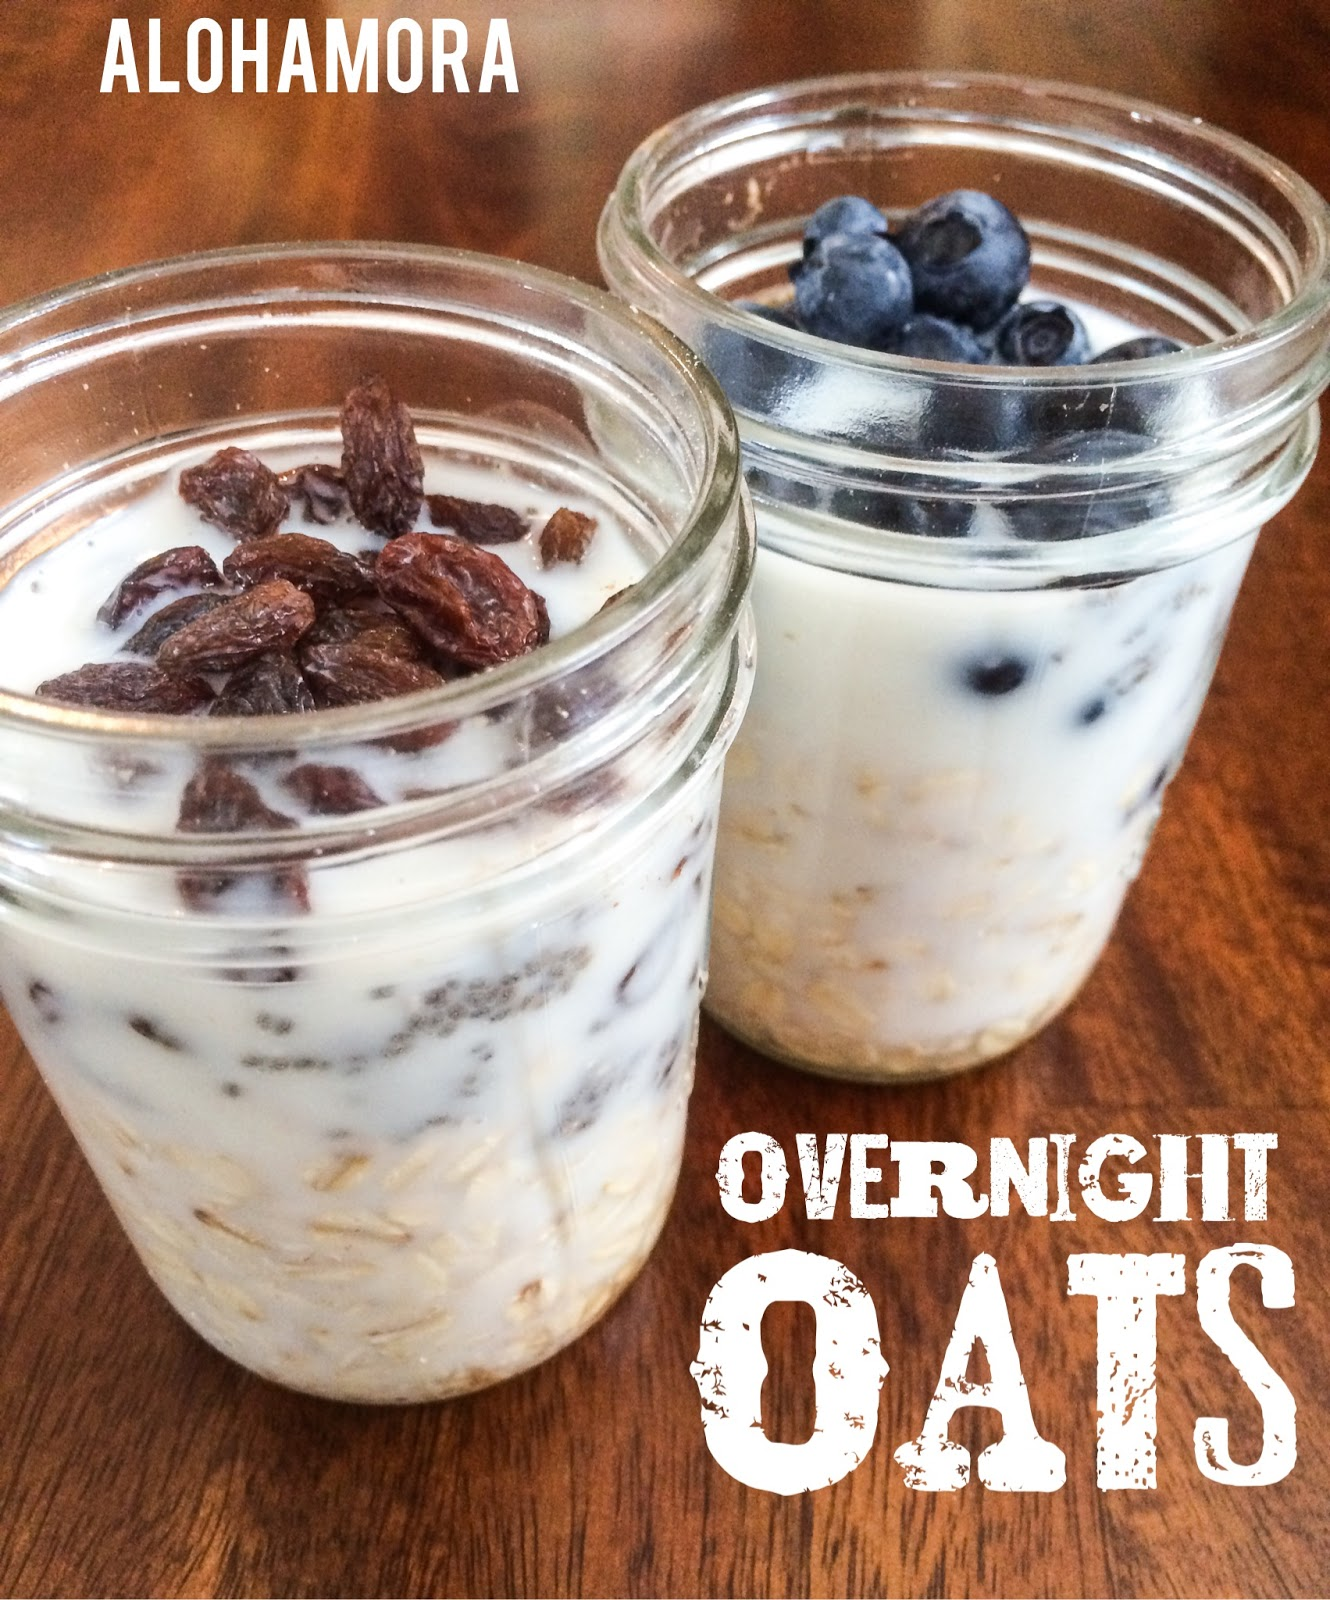 Overnight Oats is healthy, filling, and an easy to go breakfast when you are rushing out the door.   Oatmeal, fruit, almond milk, and a touch of yumminess.  It's delicious,  and my husbands go to breakfast to eat at work.  Alohamora Open a Book http://www.alohamoraopenabook.blogspot.com/